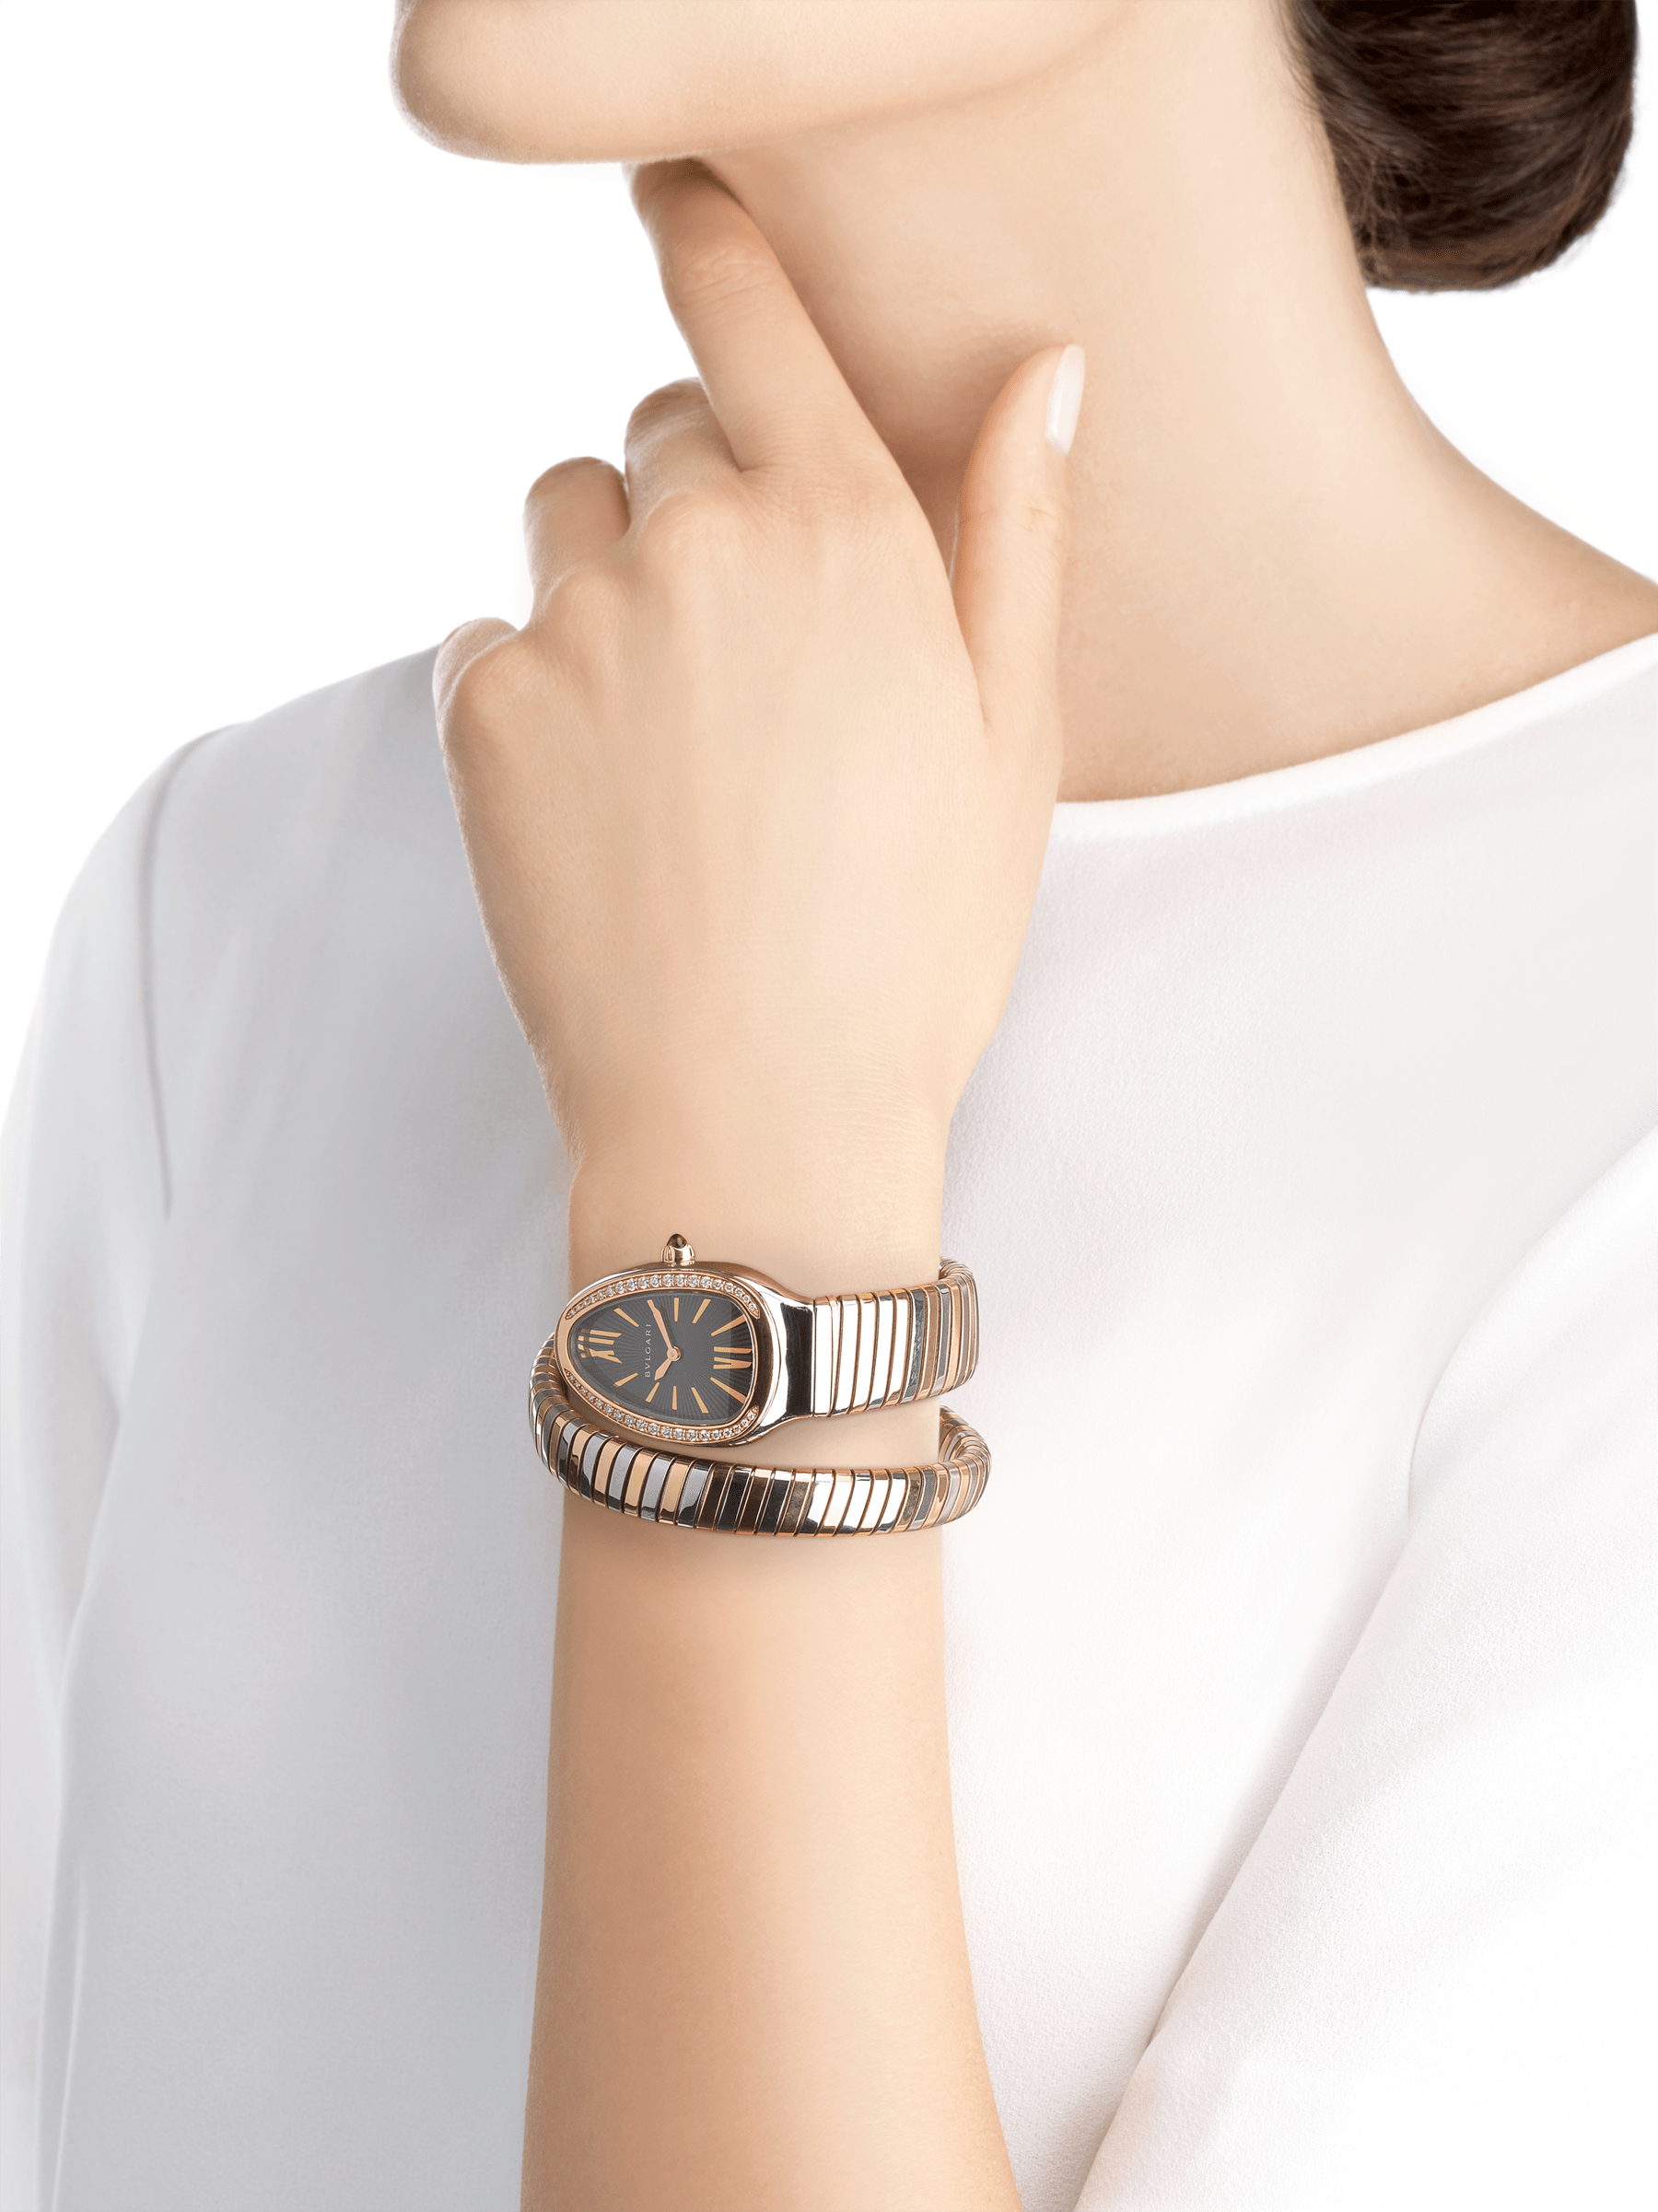 Serpenti Tubogas single spiral watch with stainless steel case, 18 kt rose gold bezel set with brilliant cut diamonds, grey lacquered dial, 18 kt rose gold and stainless steel bracelet. 102681 image 4